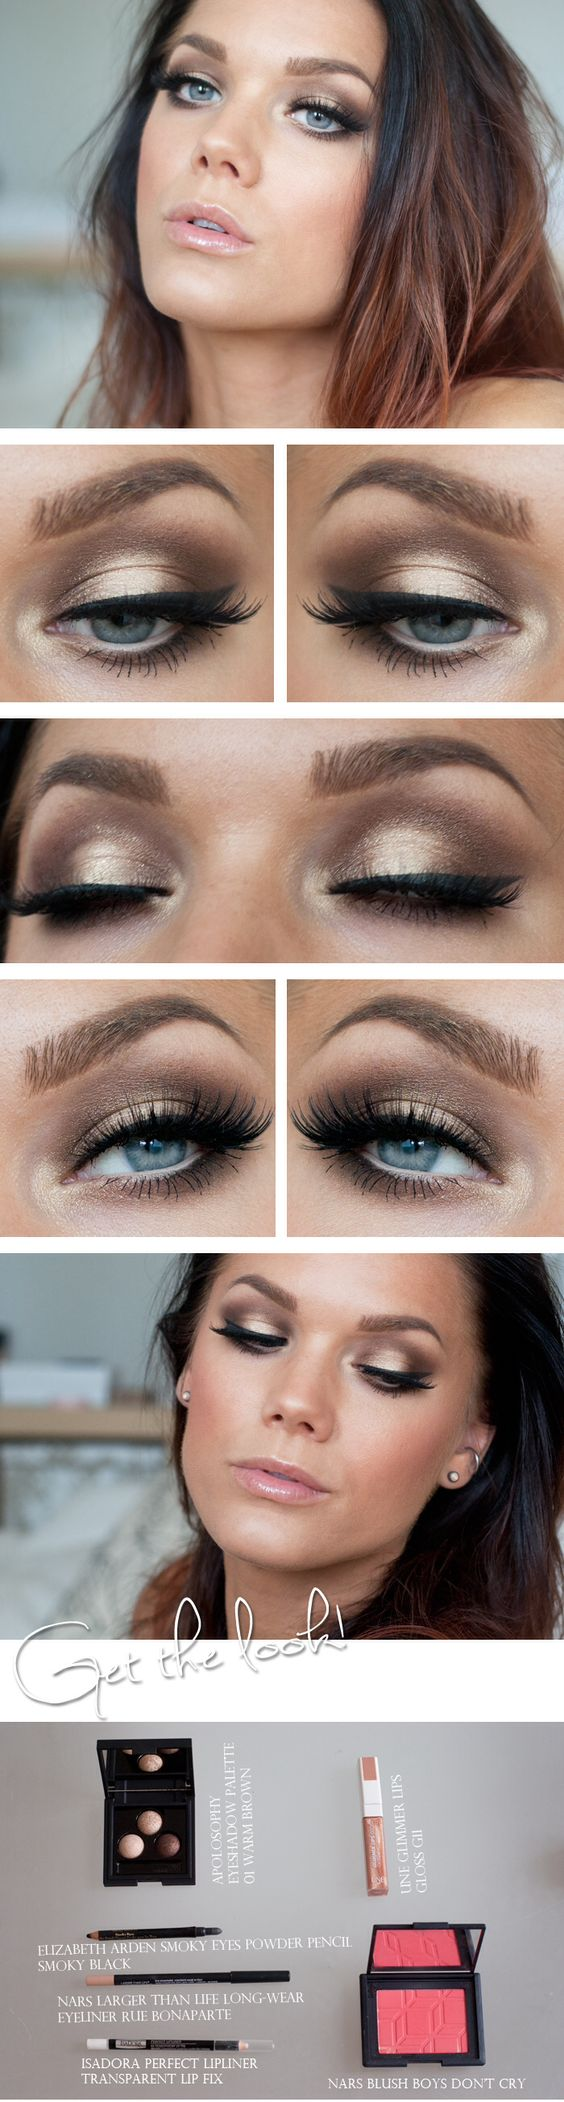 Love These Champagne eyes! - Perfect for tomorrow! Memorial Day & Fleet week!: